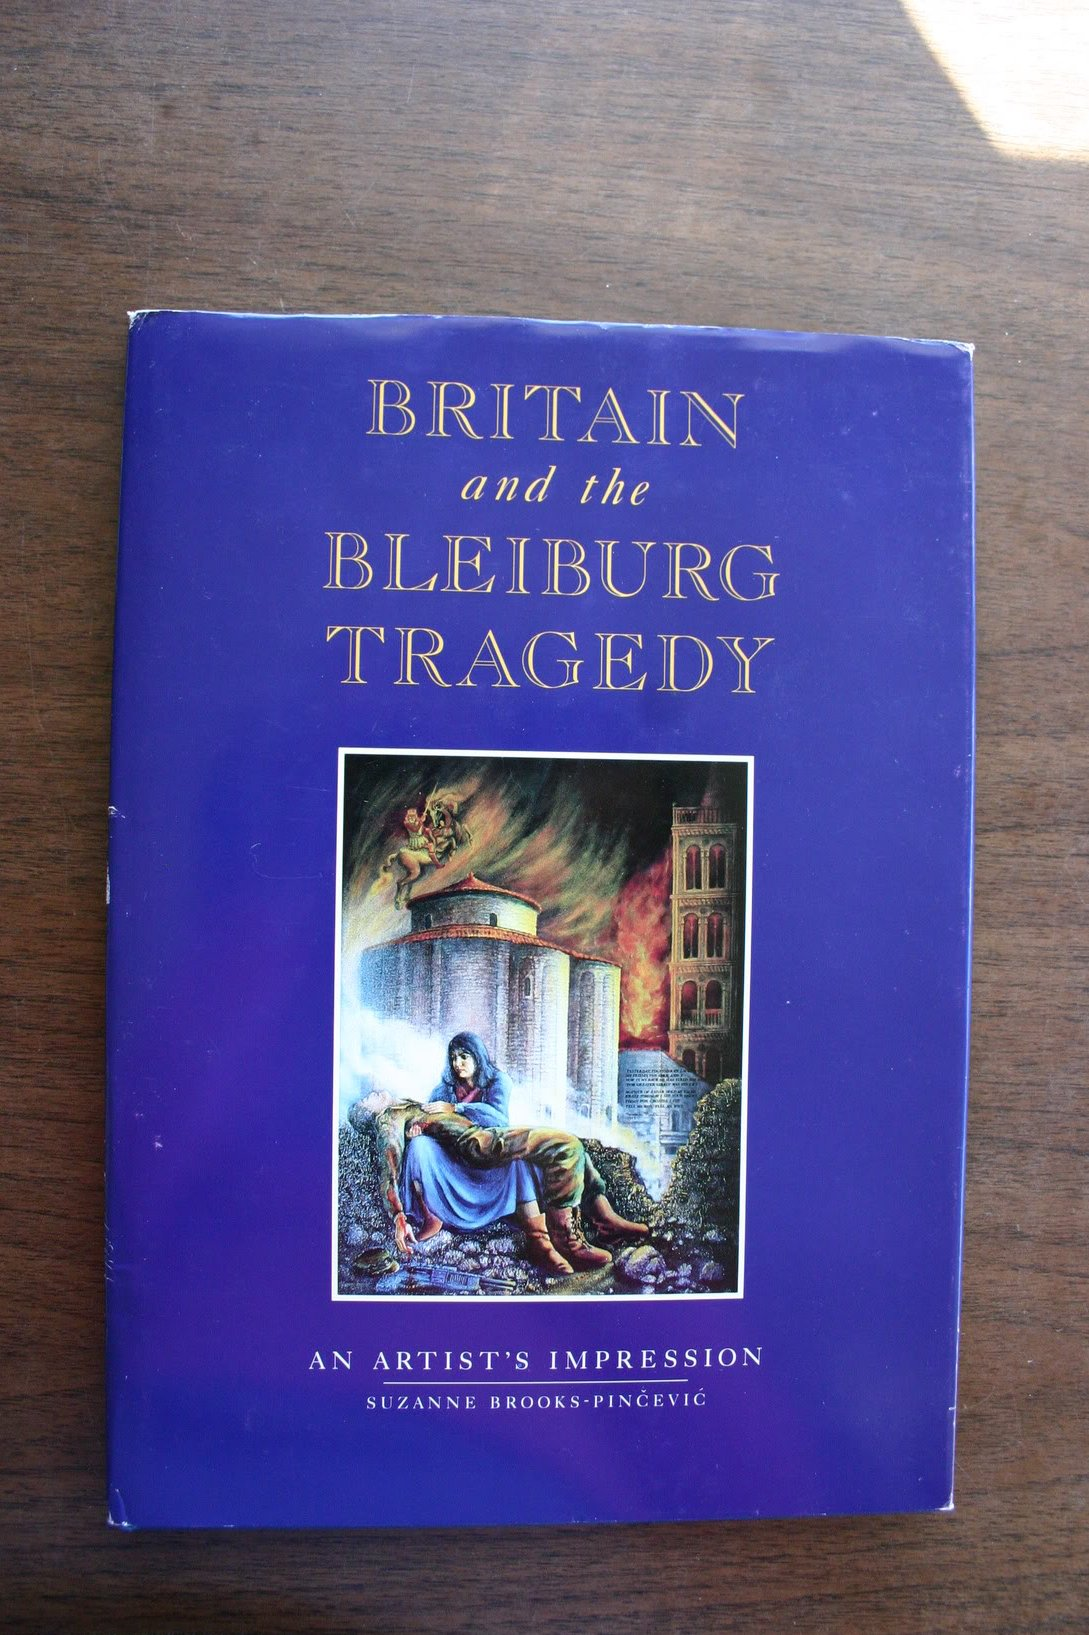 Britain and the Bleiburg Tragedy